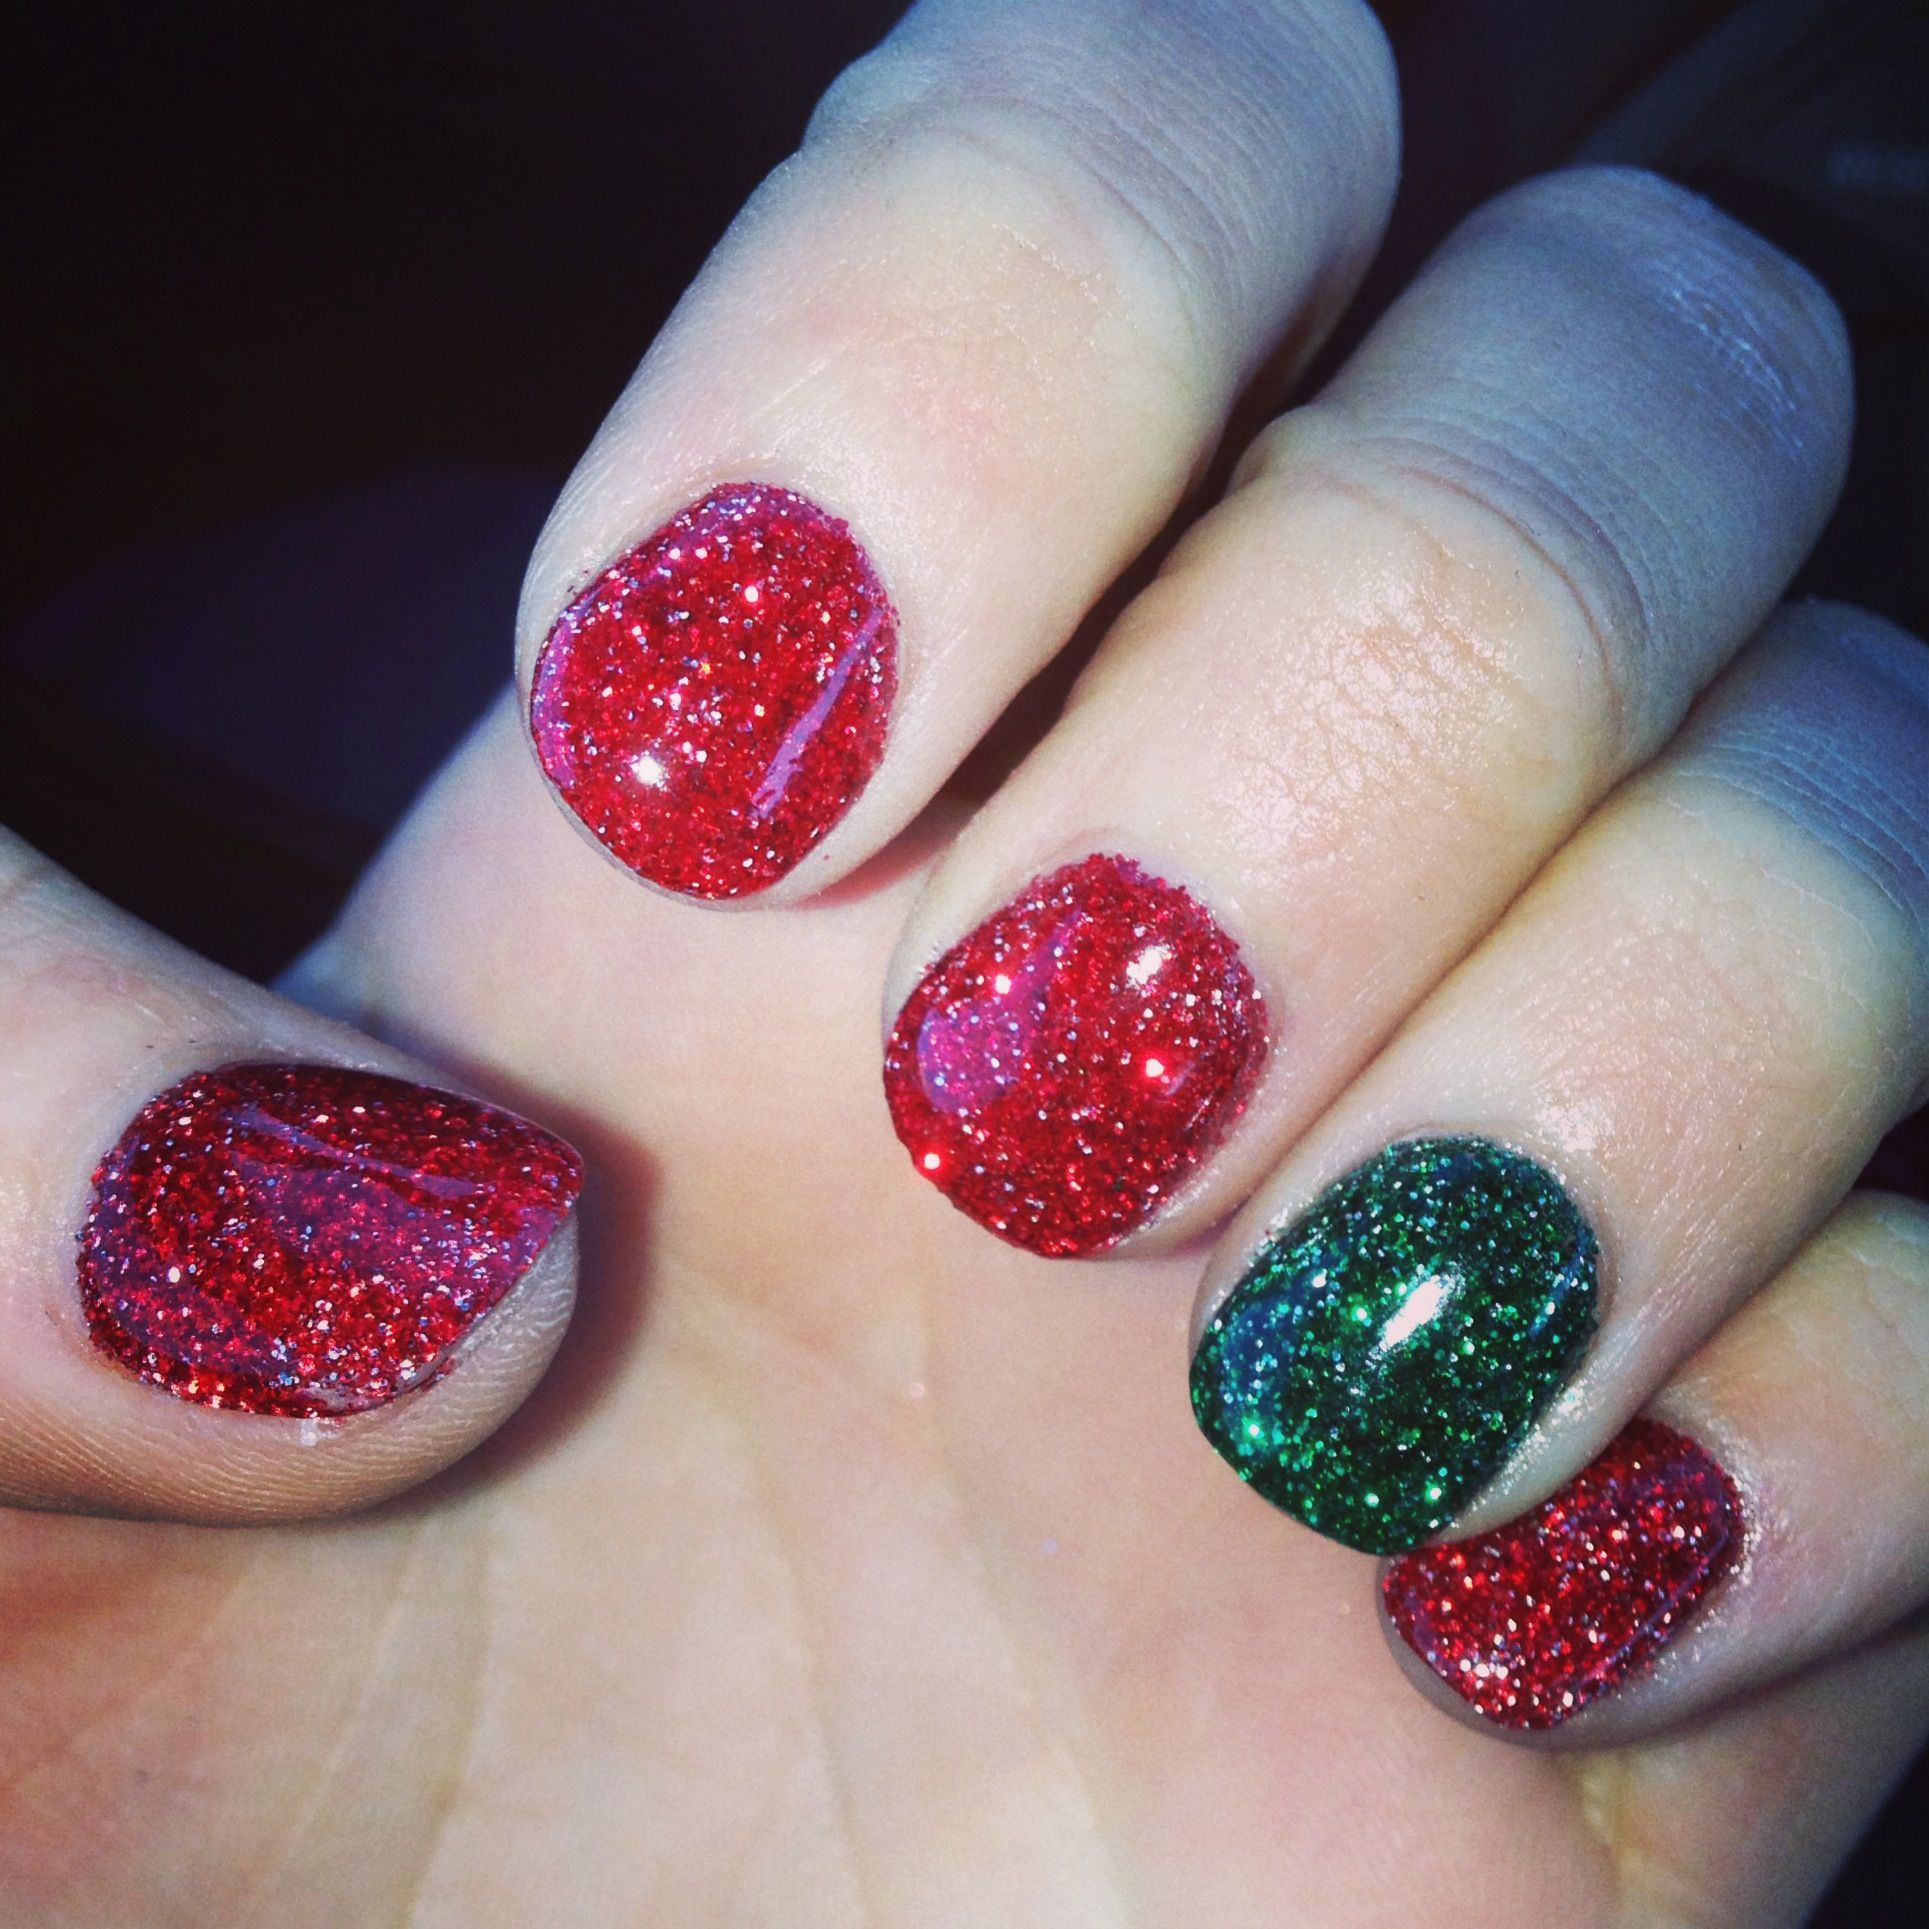 Xmas Nail Colours: My Christmas Nails. SNS Powder Gel. No UV Light